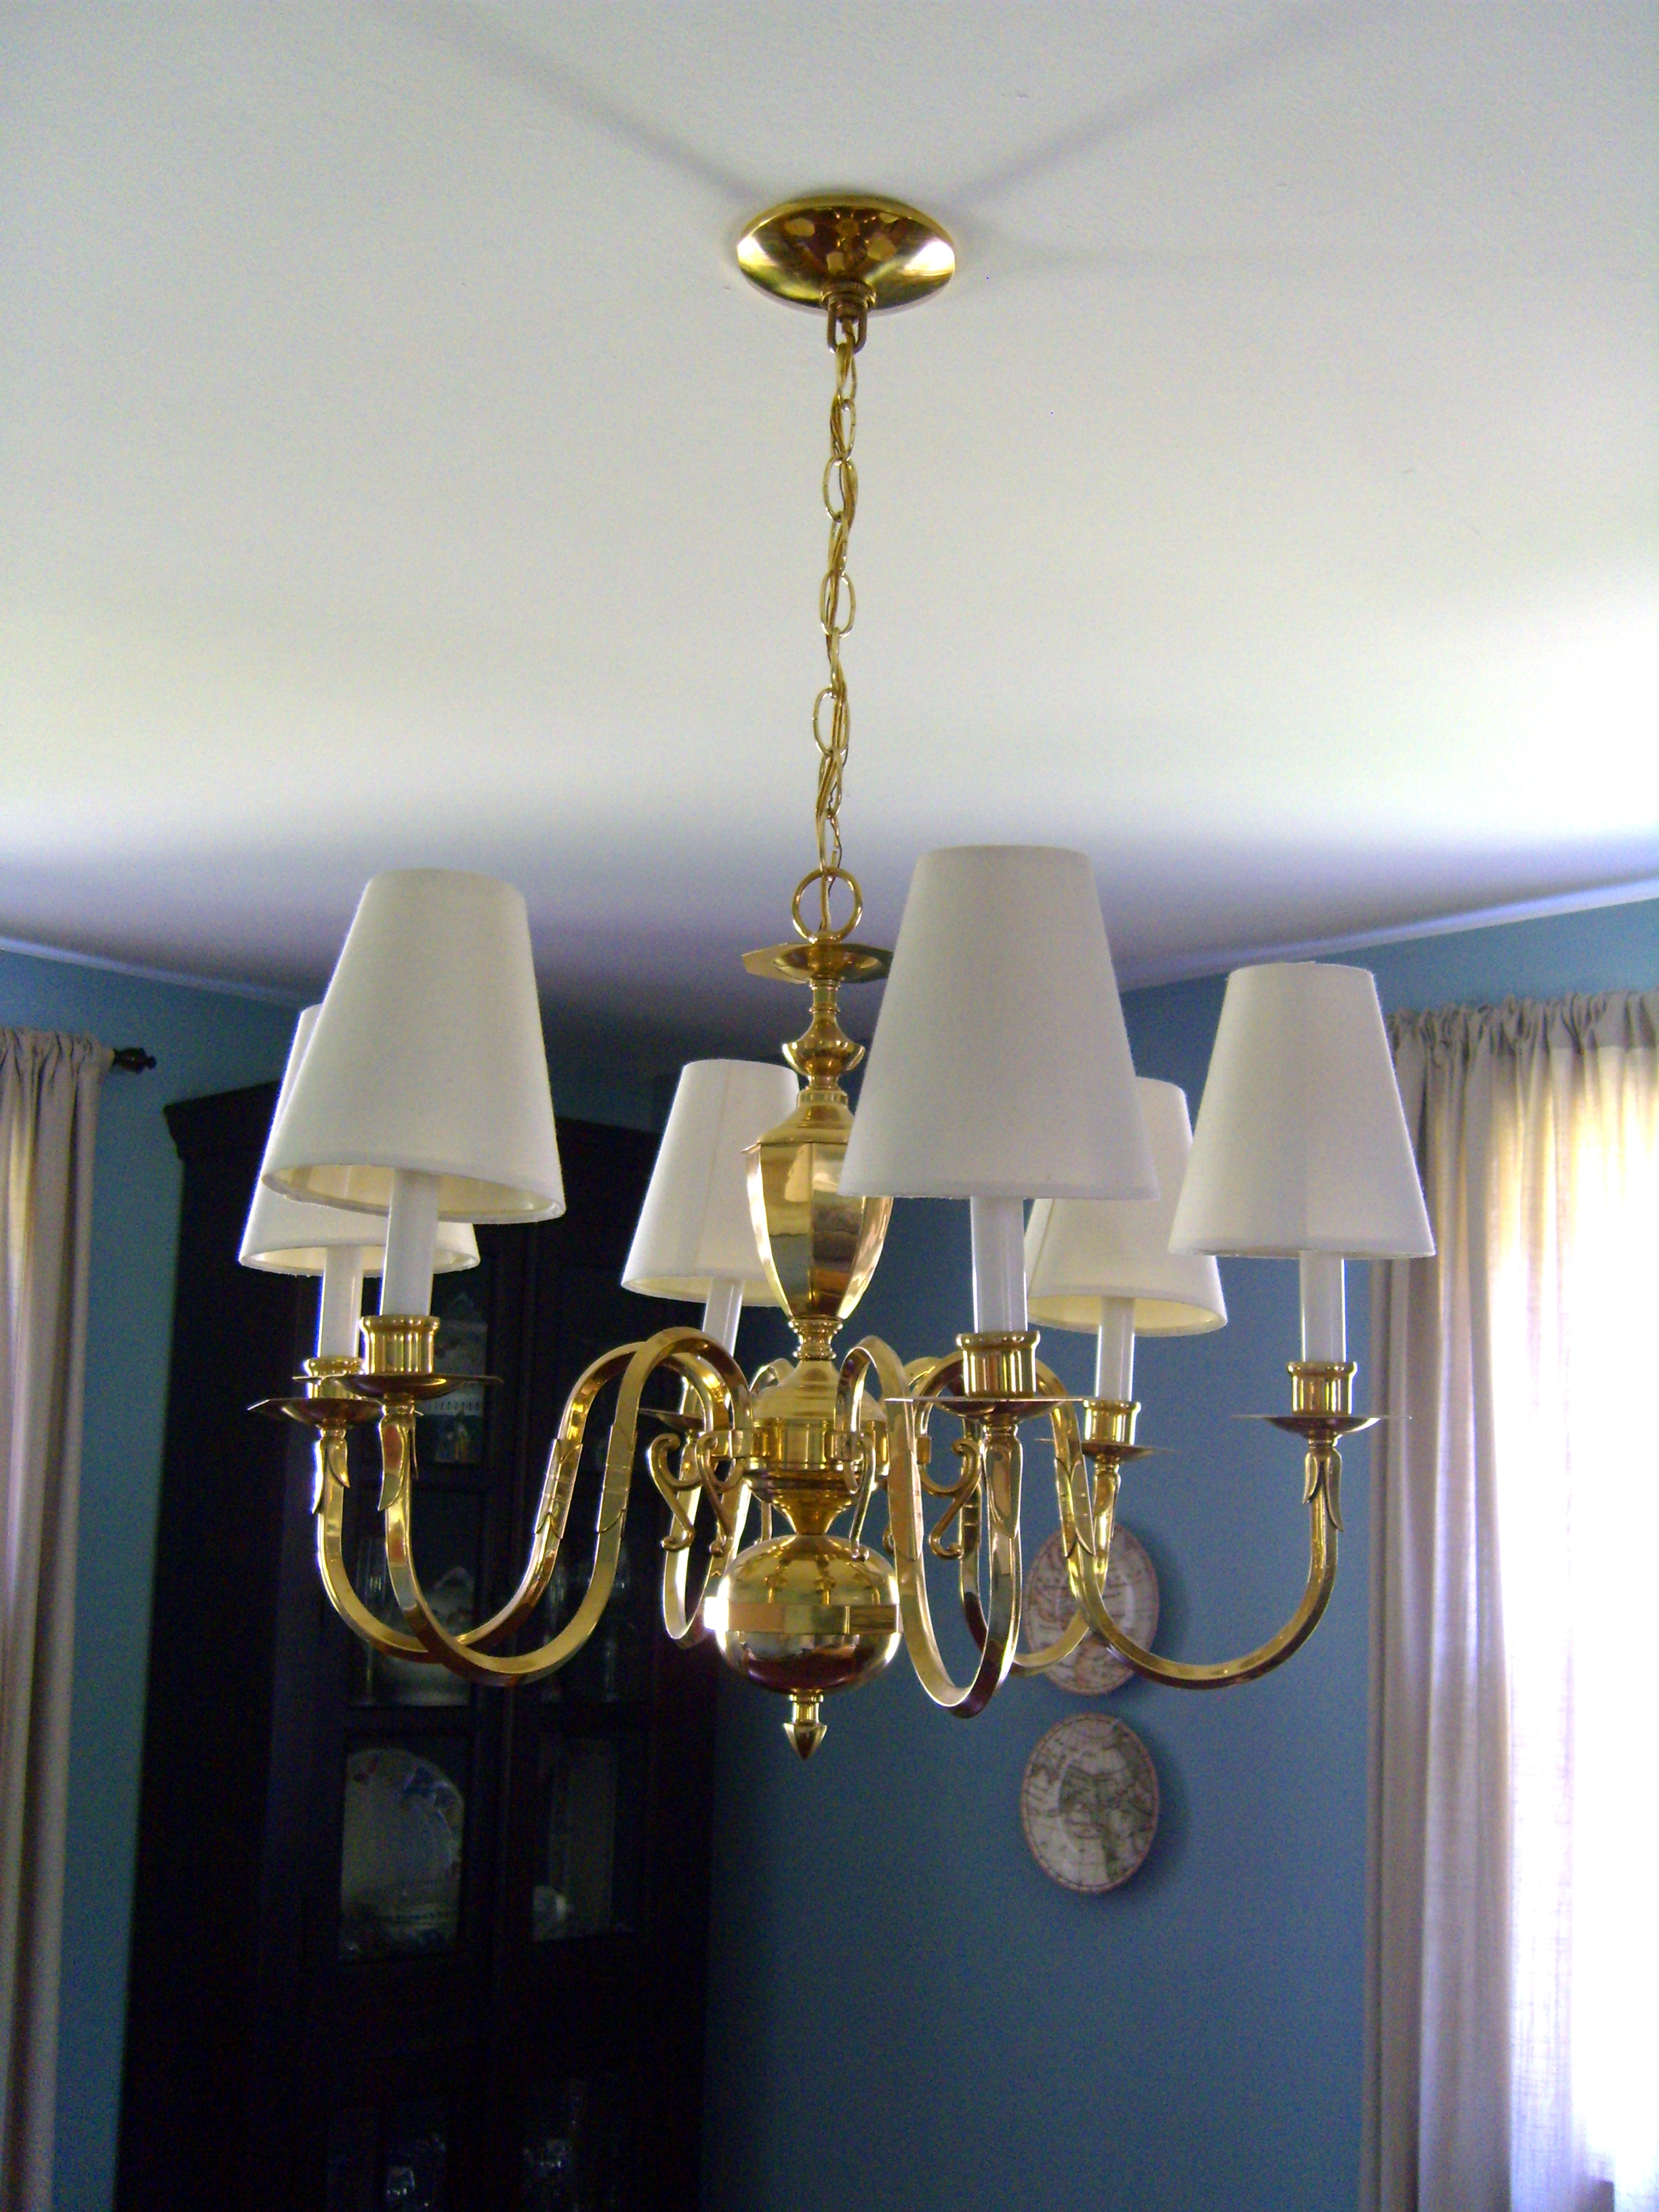 Chandelier Shades Black Mini Lamp Shadeschandelier In And White Intended For Black Chandeliers With Shades (Image 13 of 25)